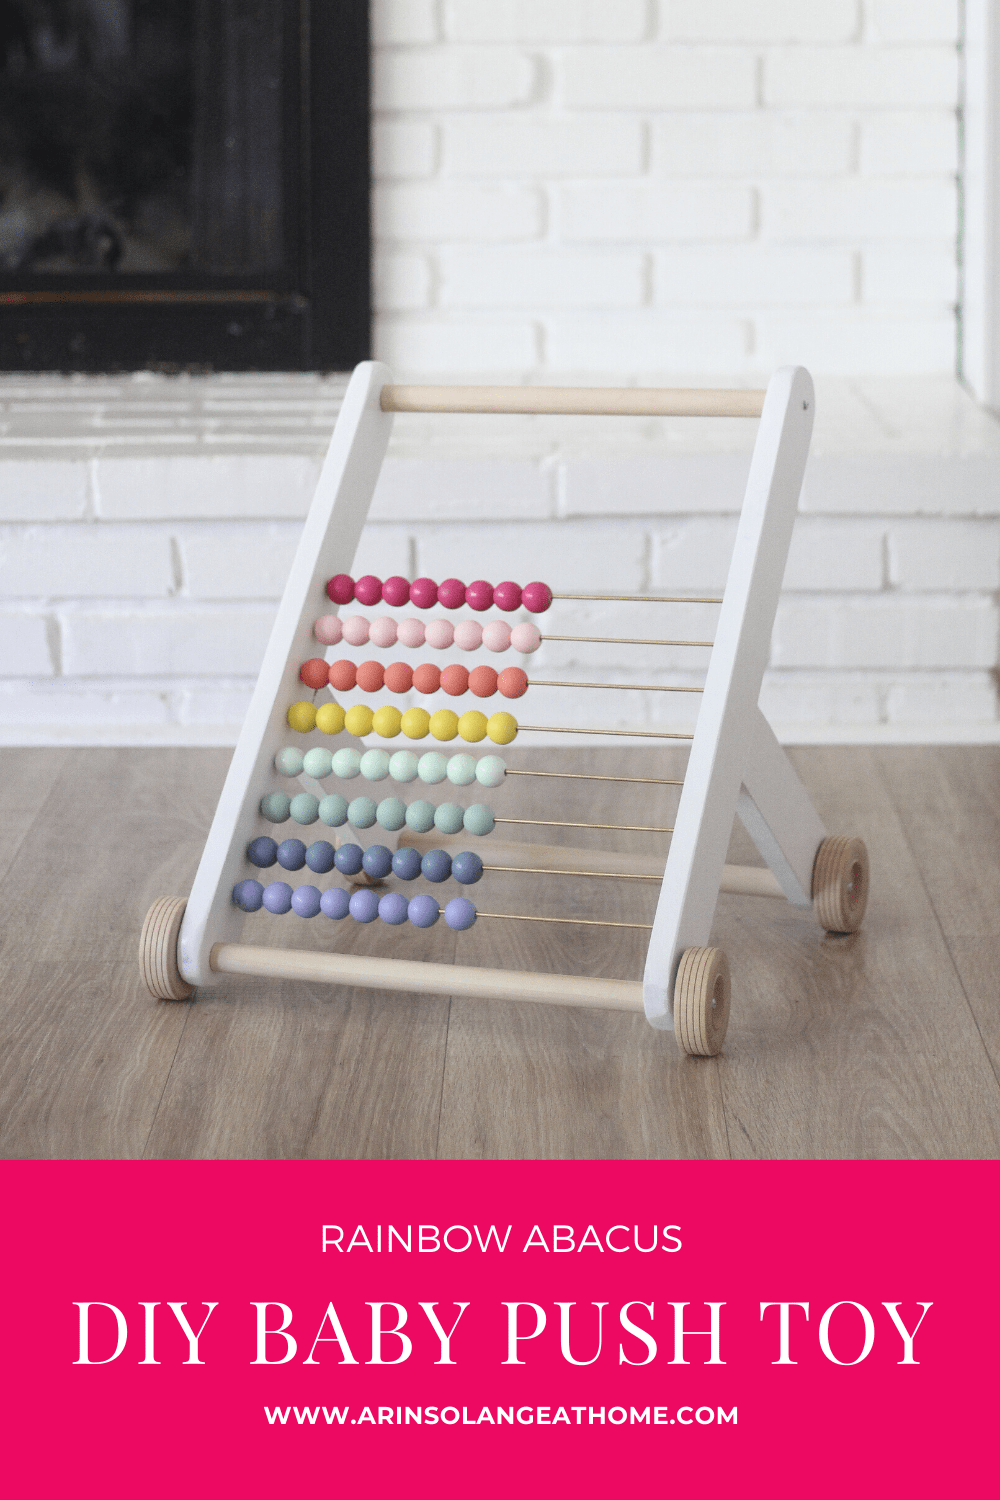 DIY rainbow abacus baby push toy